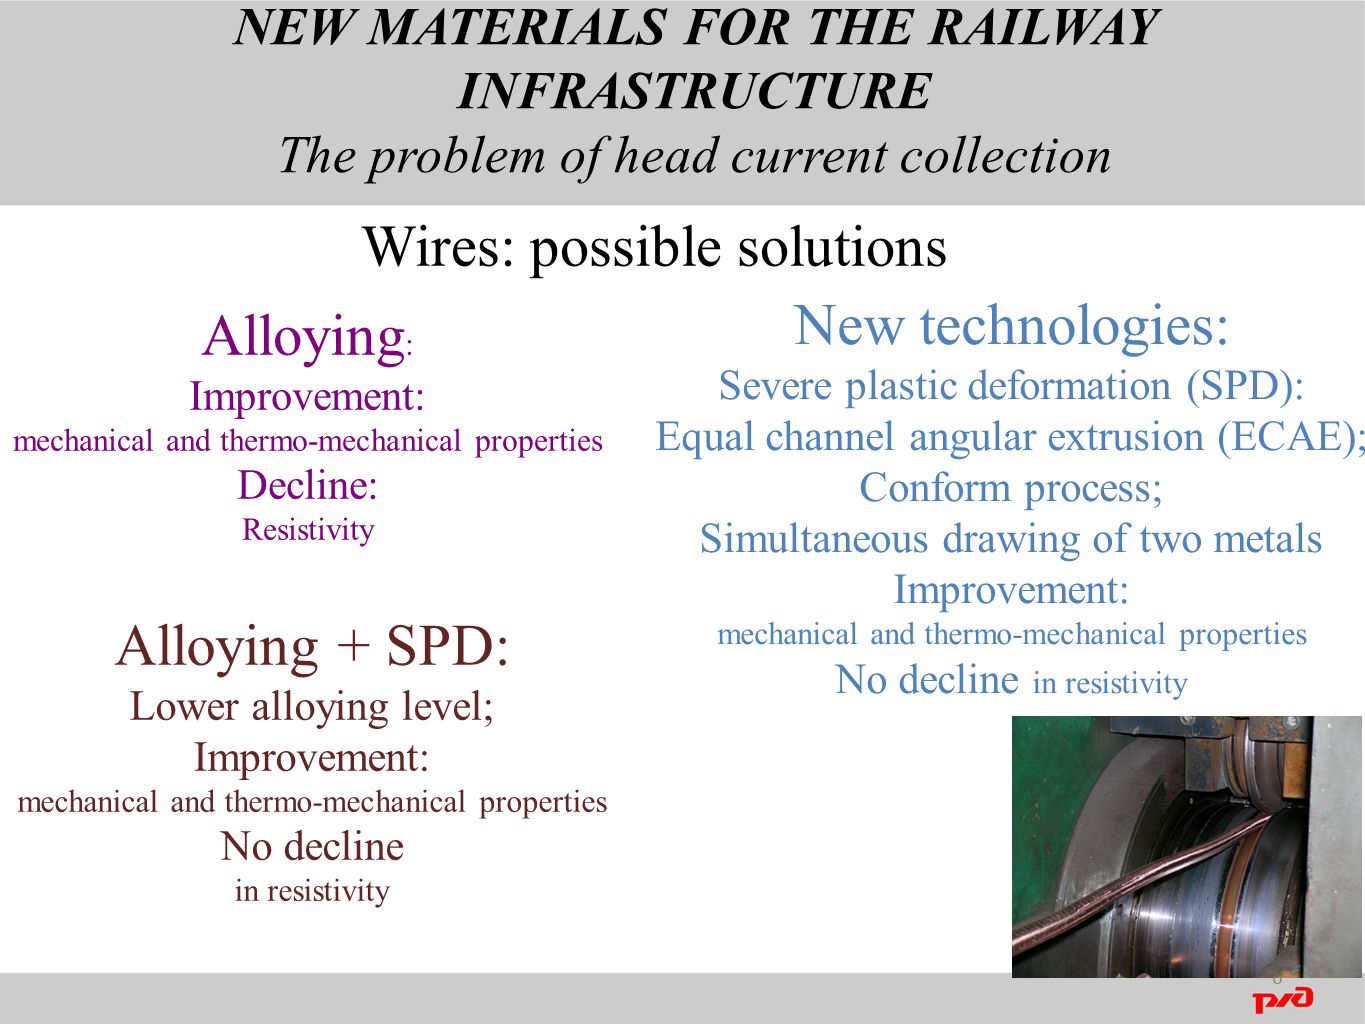 NEW MATERIALS FOR THE RAILWAY INFRASTRUCTURE The problem of head current collection 6 Wires: possible solutions Alloying : Improvement: mechanical and thermo-mechanical properties Decline: Resistivity New technologies: Severe plastic deformation (SPD): Equal channel angular extrusion (ECAE); Conform process; Simultaneous drawing of two metals Improvement: mechanical and thermo-mechanical properties No decline in resistivity Alloying + SPD: Lower alloying level; Improvement: mechanical and thermo-mechanical properties No decline in resistivity